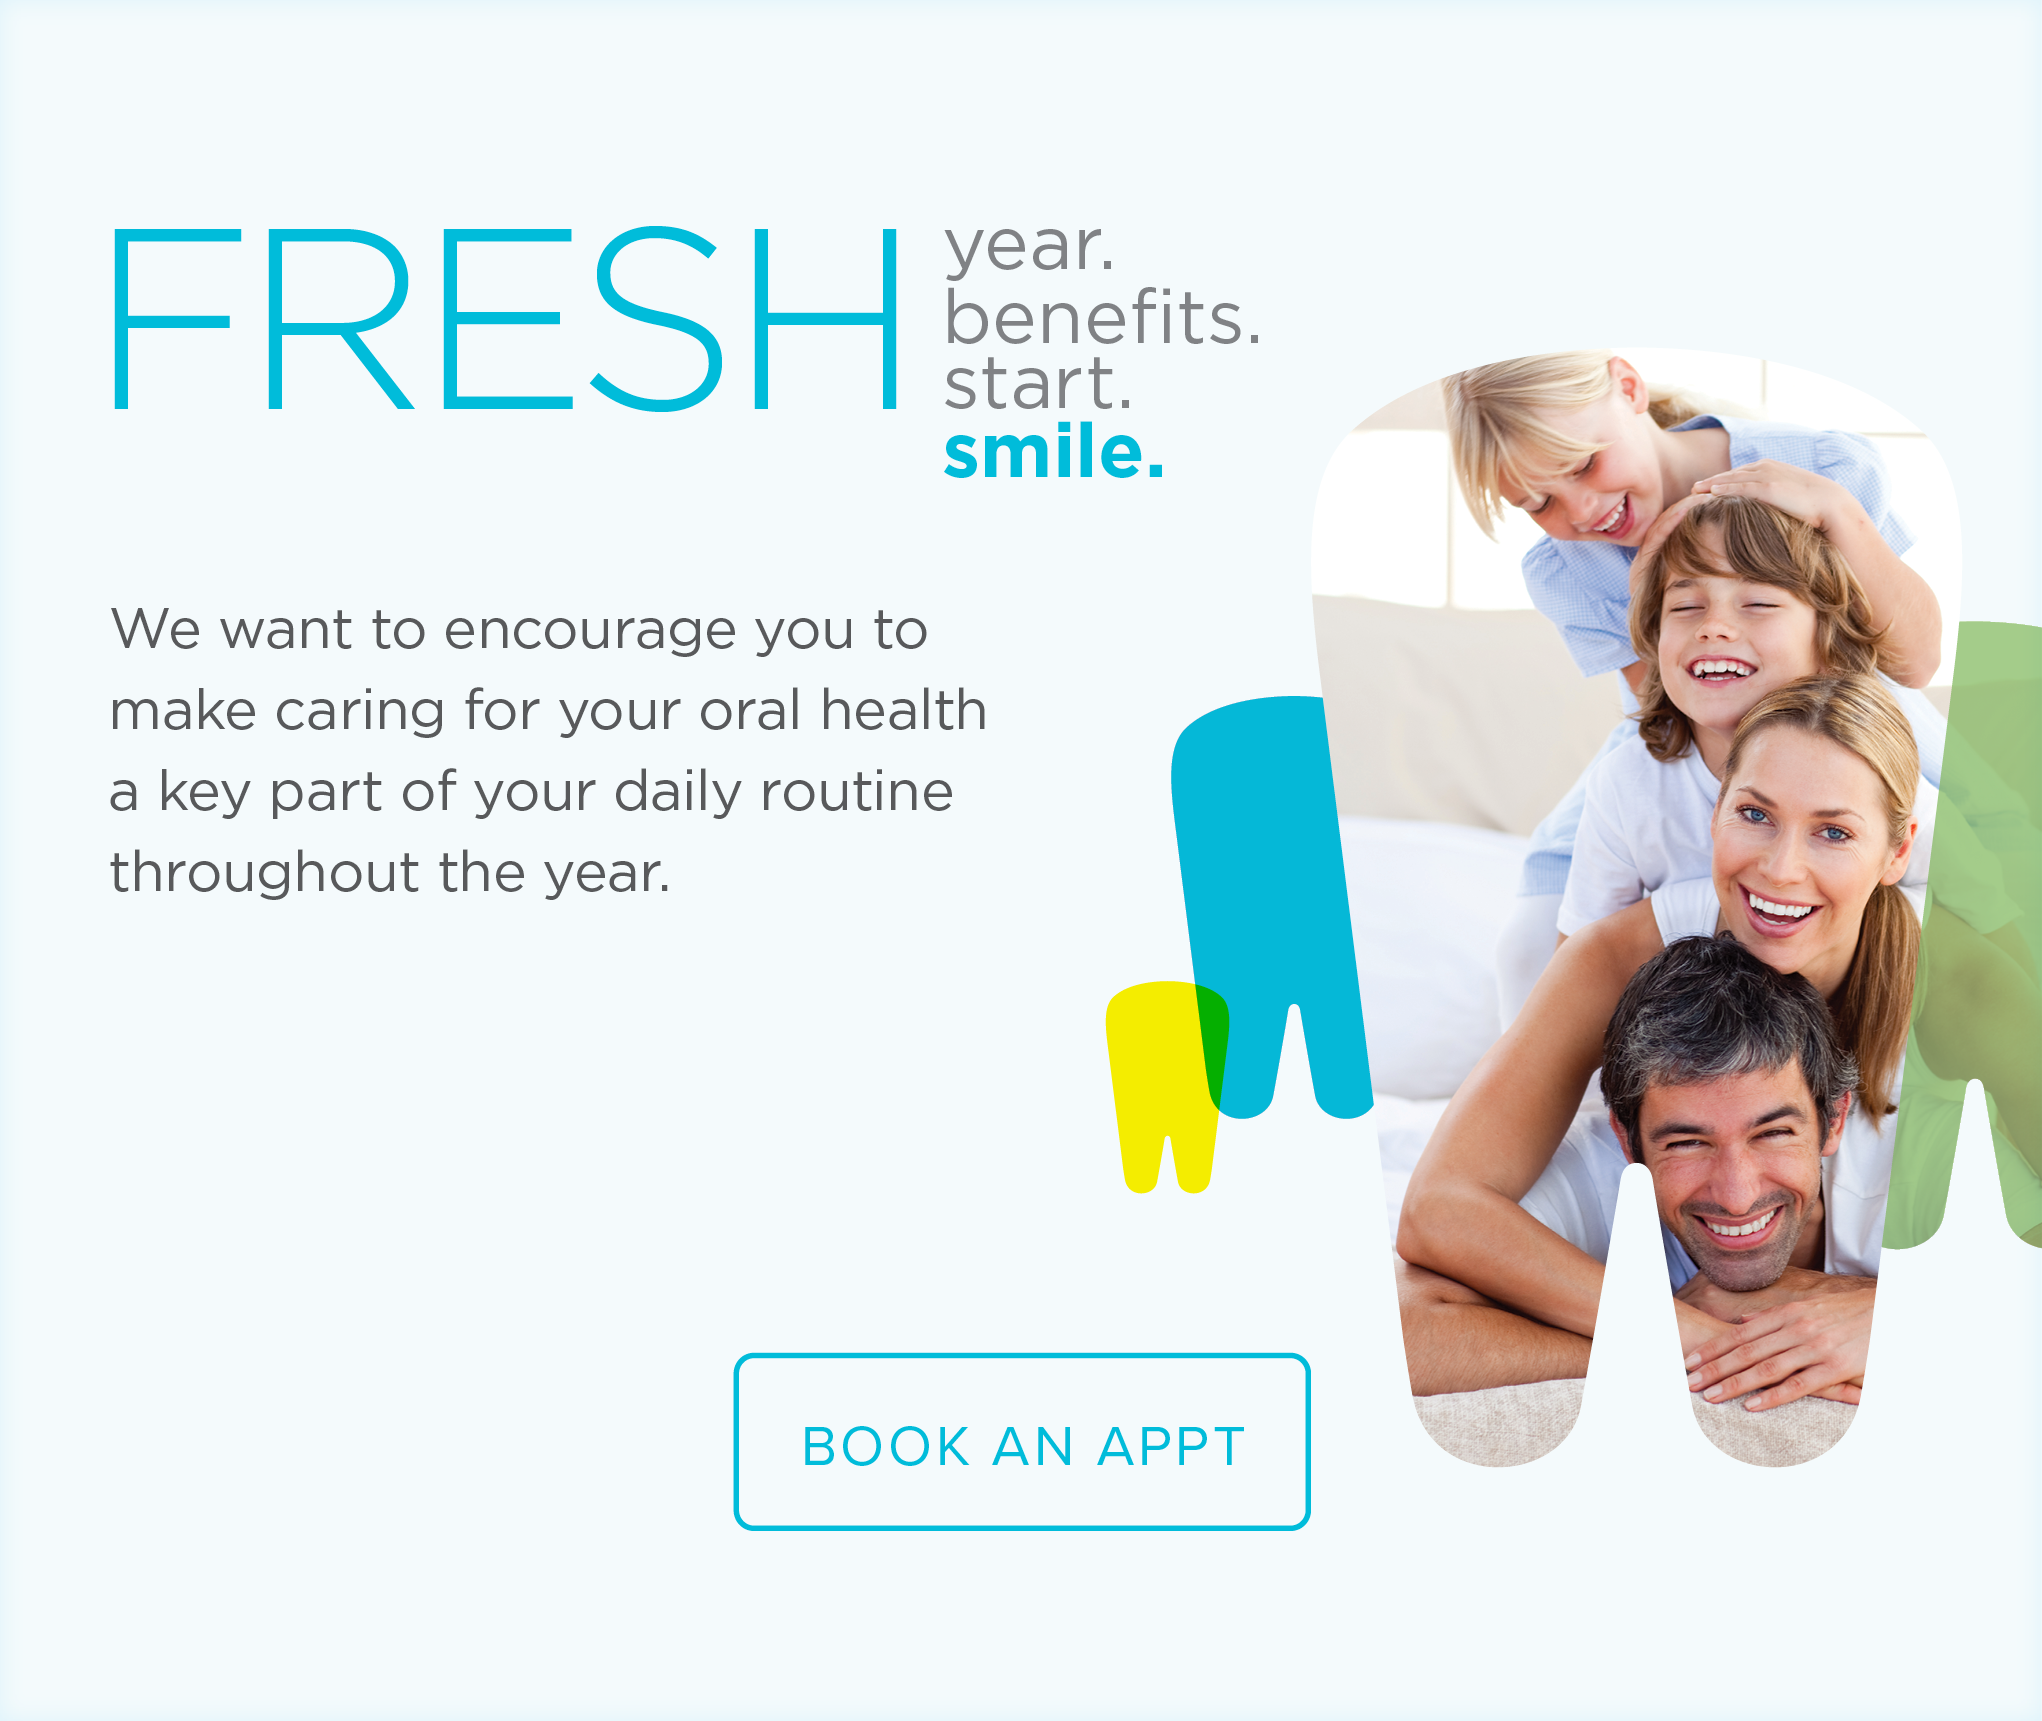 Laguna Niguel Dental Group and Orthodontics - Make the Most of Your Benefits